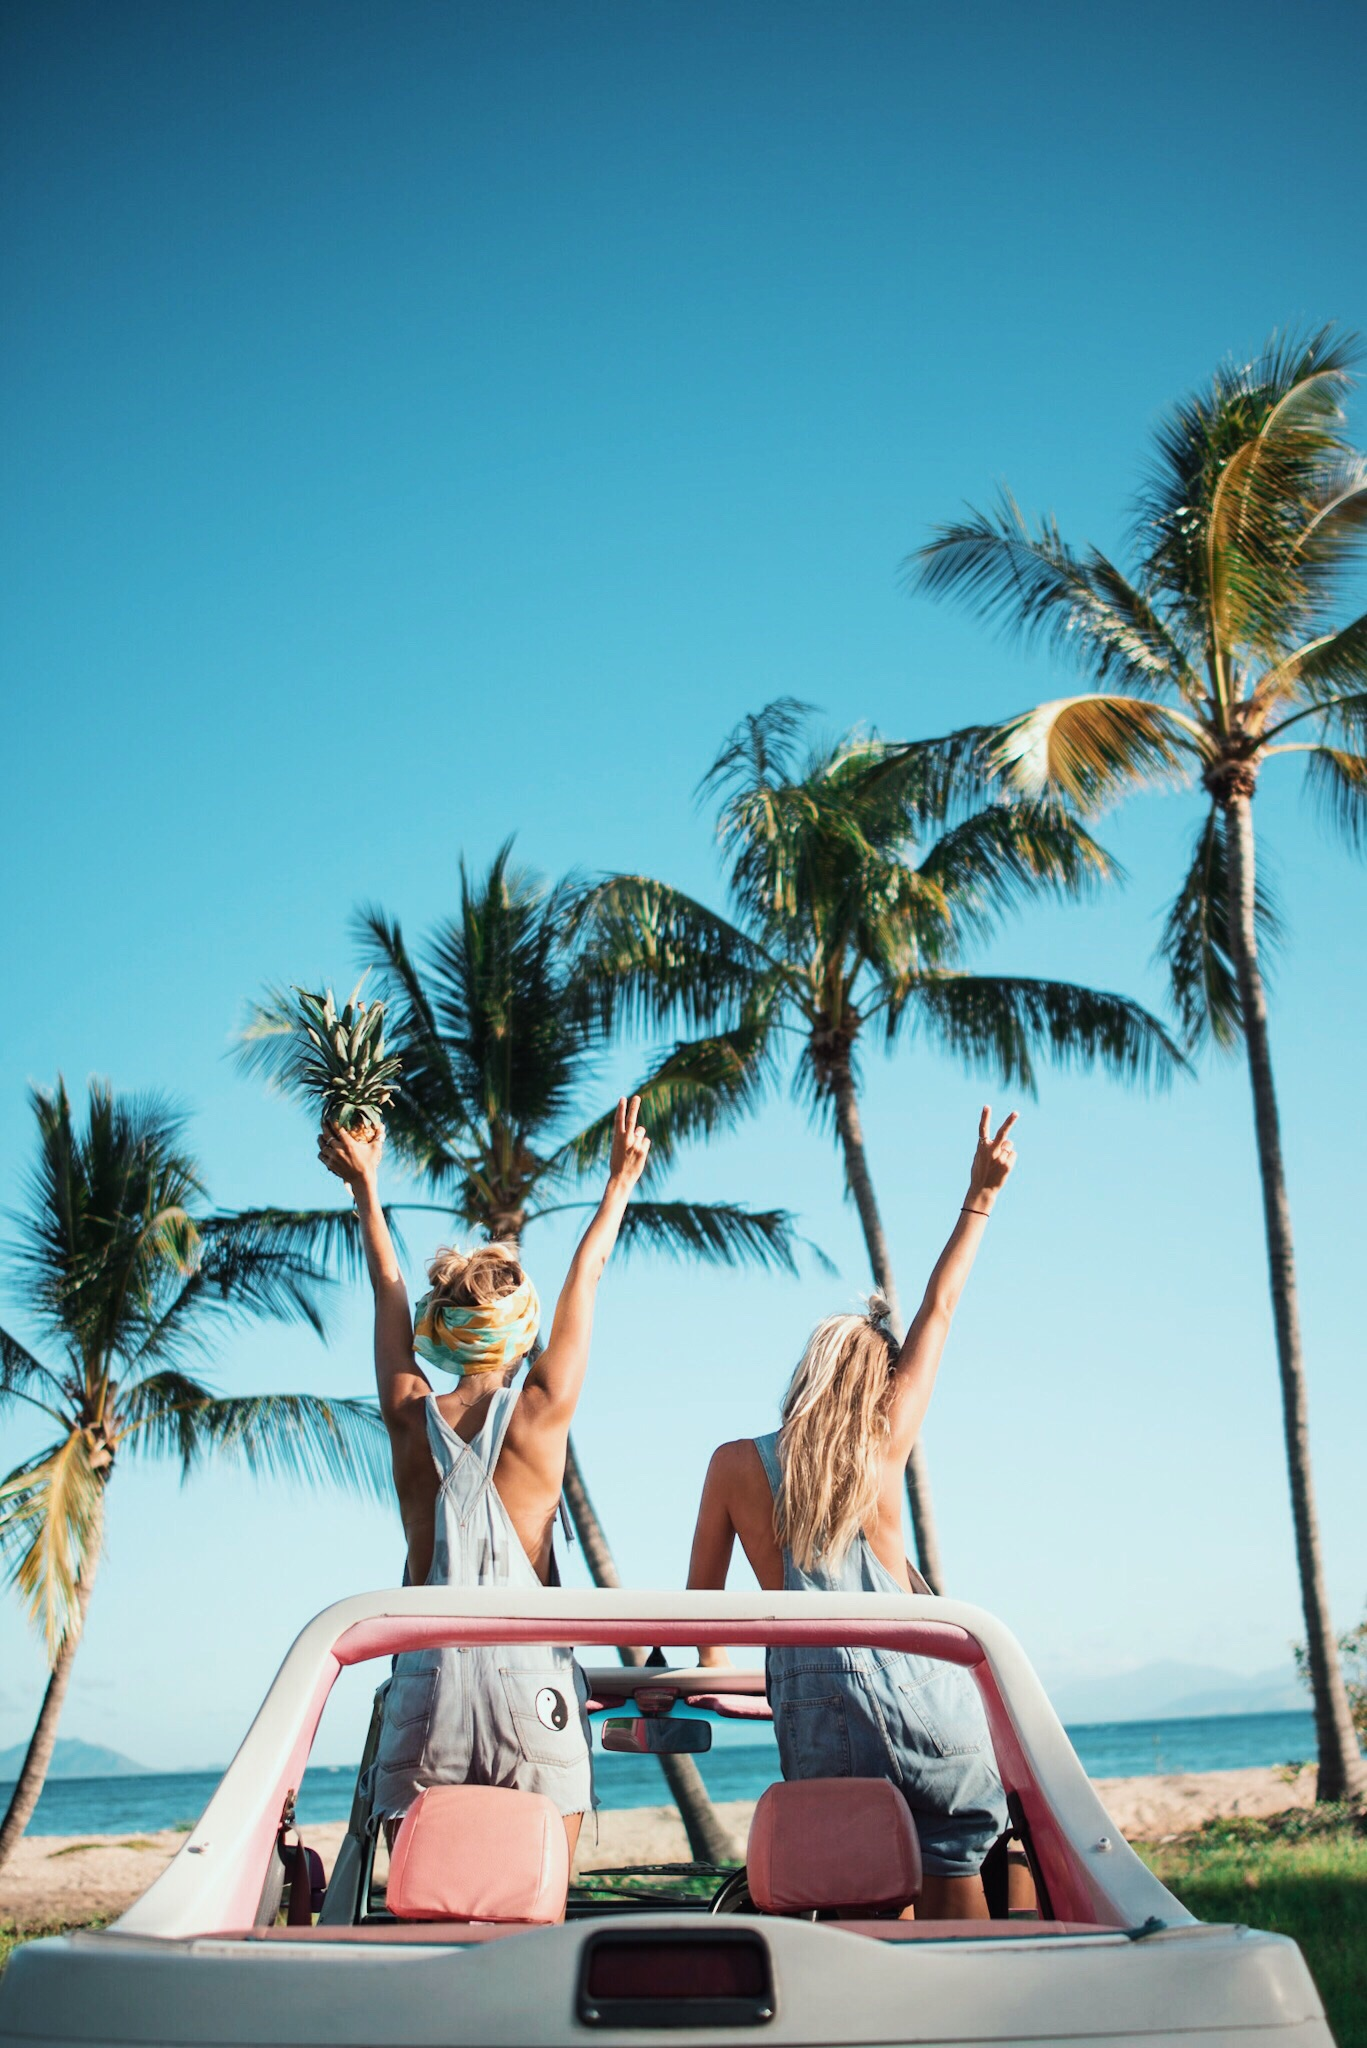 Topless in the tropical topless cars